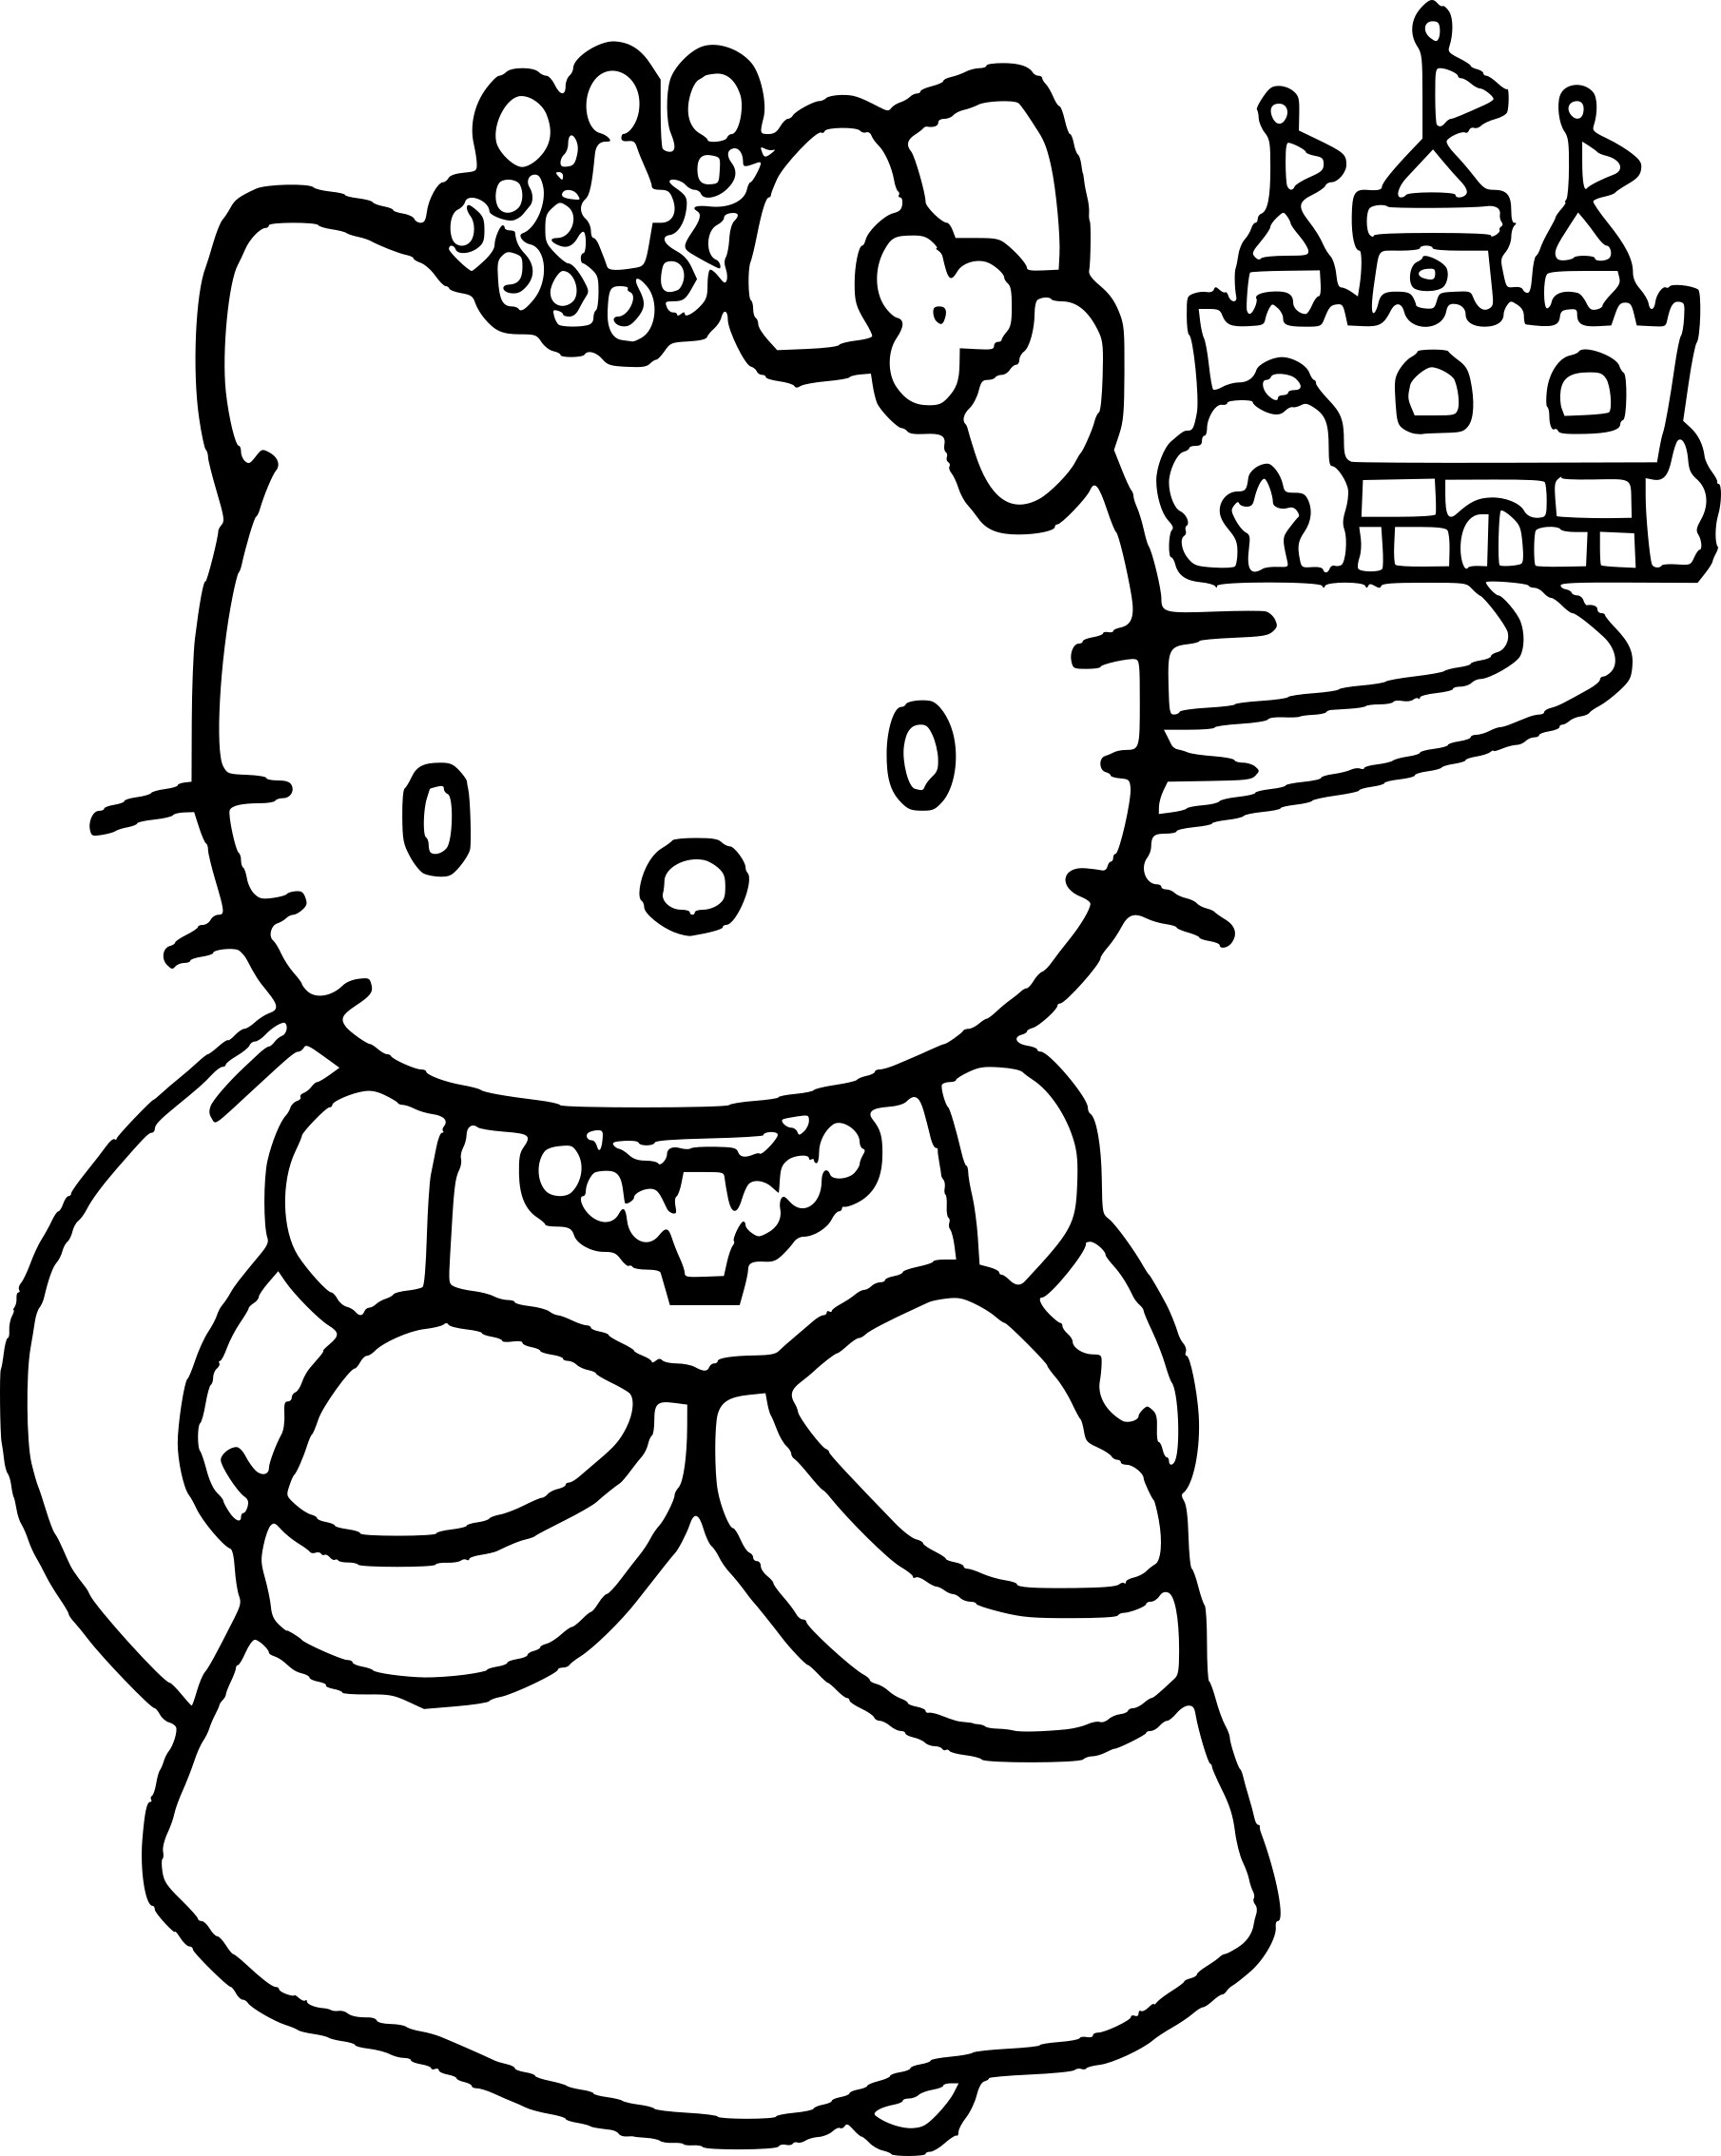 Coloriage hello kitty princesse dessin imprimer sur - Coloriage hello kitty gratuit ...